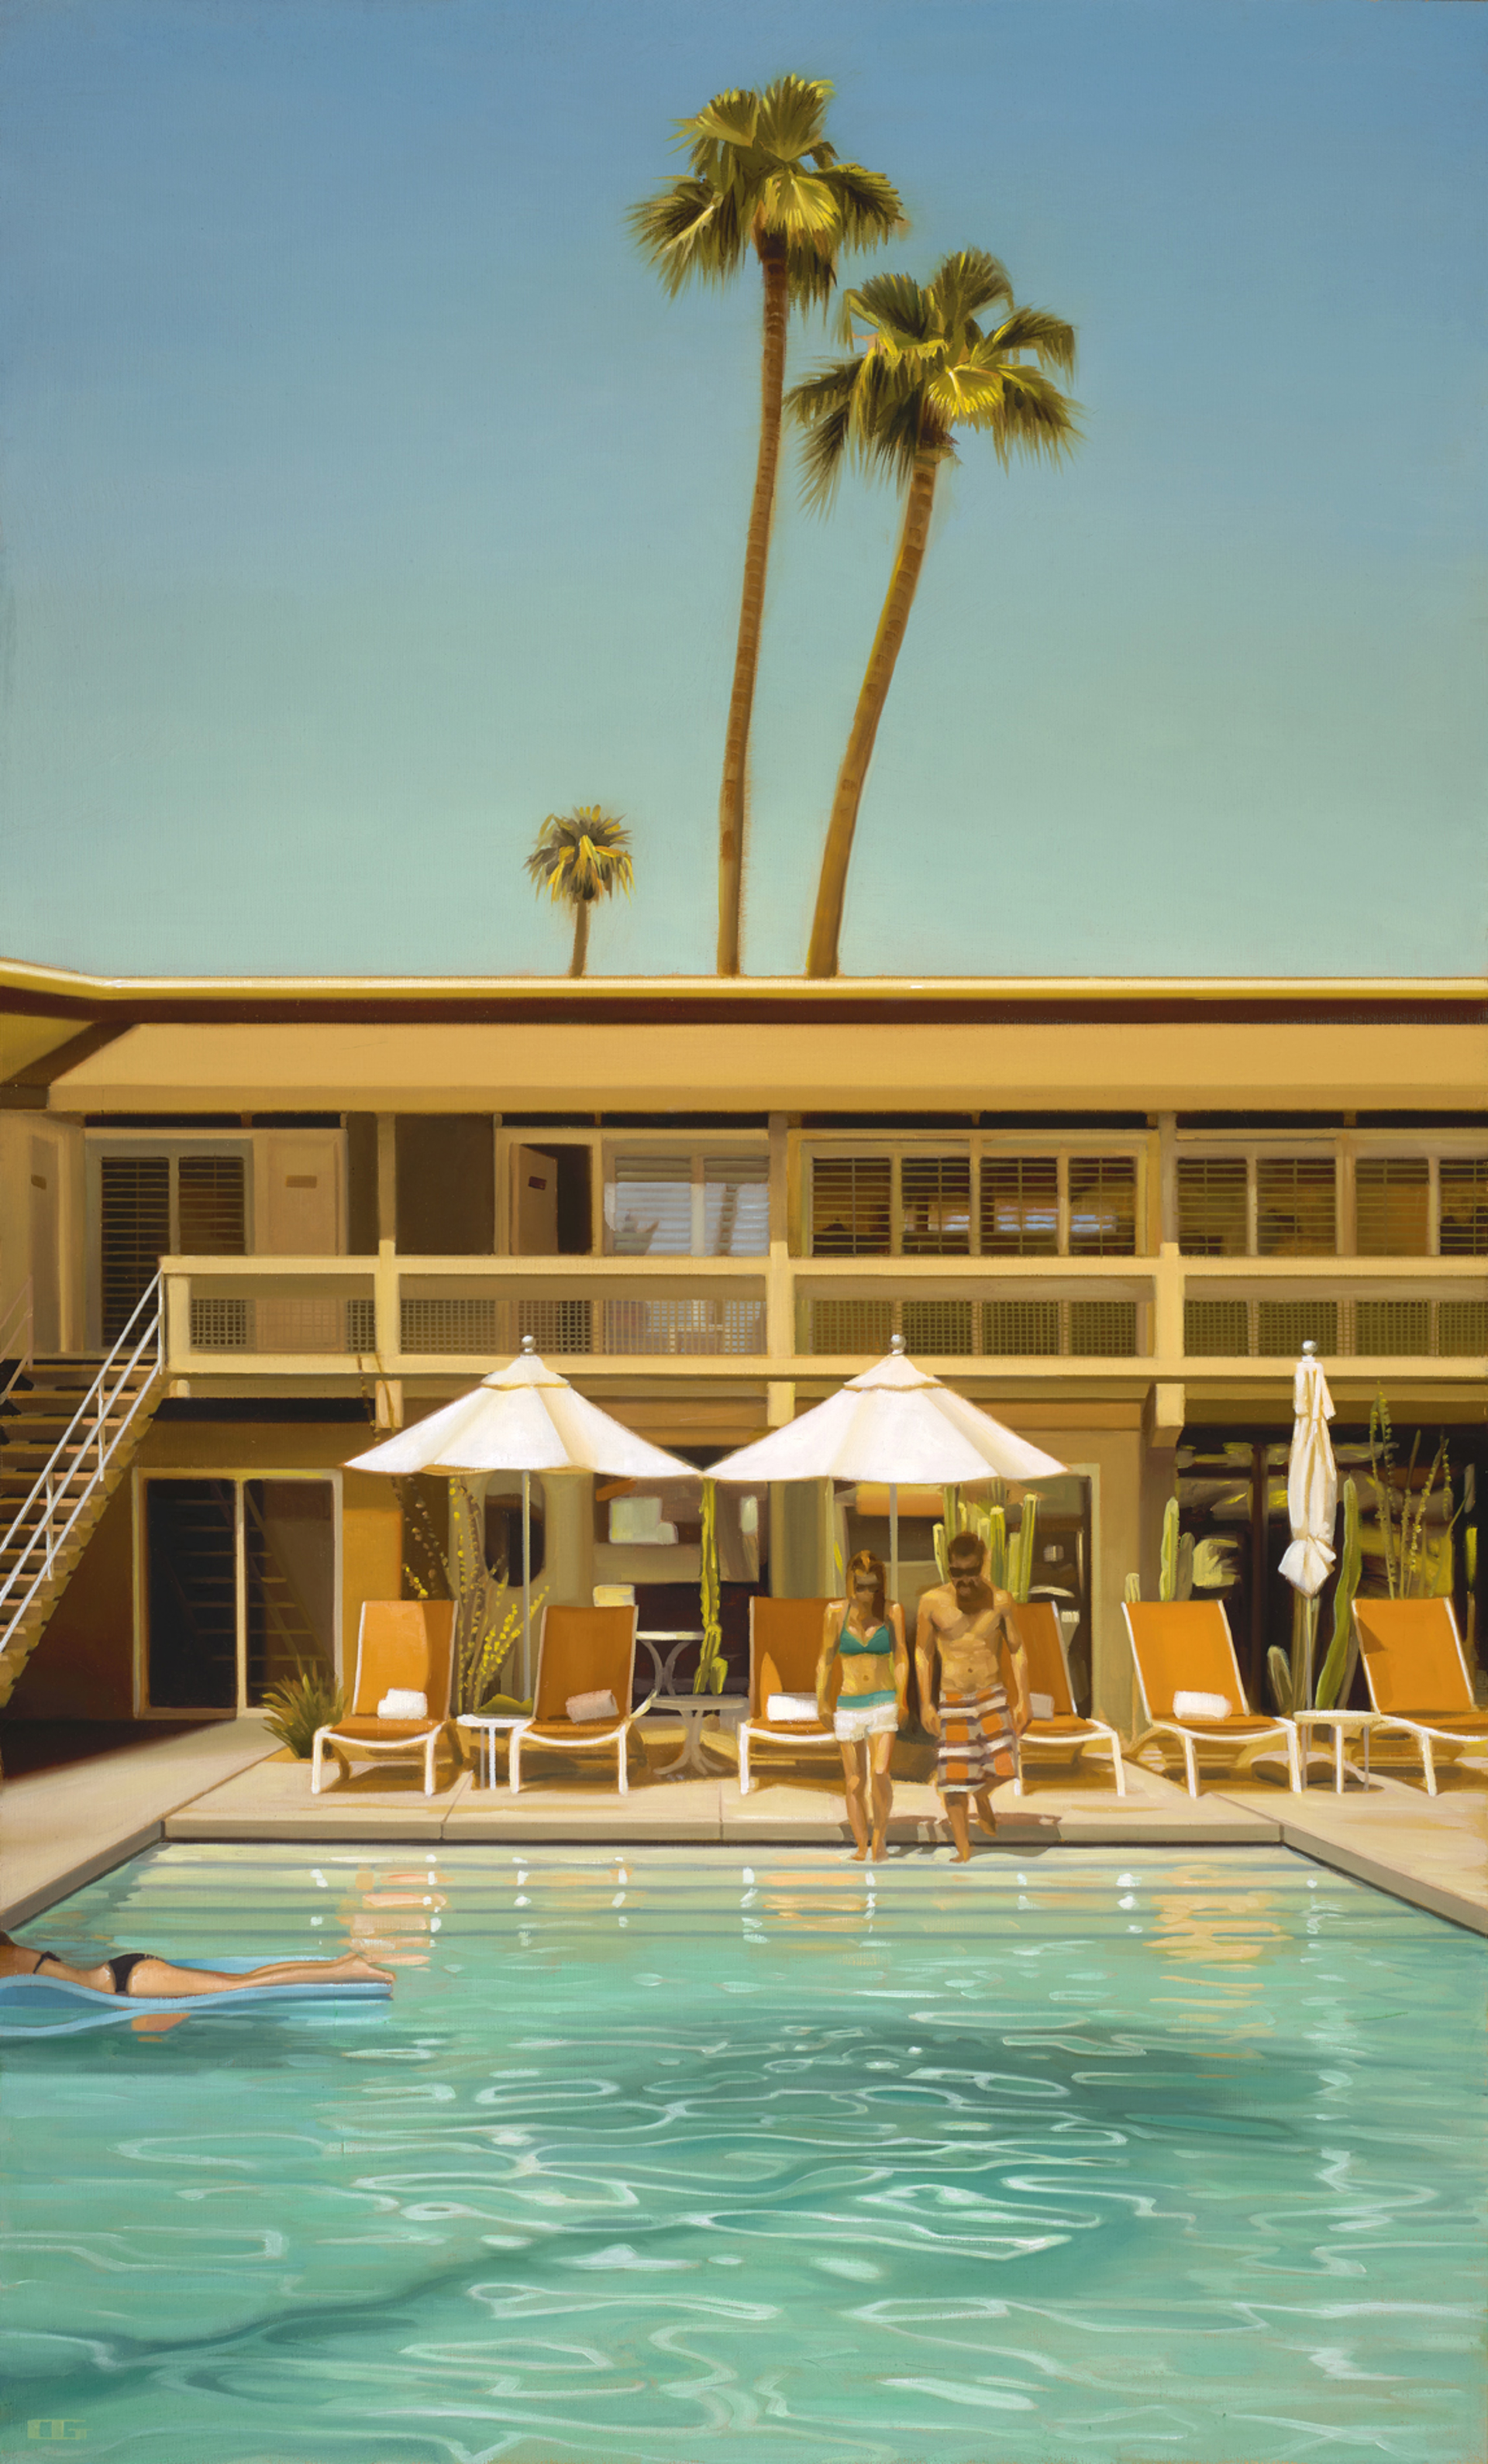 Del Marcos Hotel (S/N) by Carrie Graber